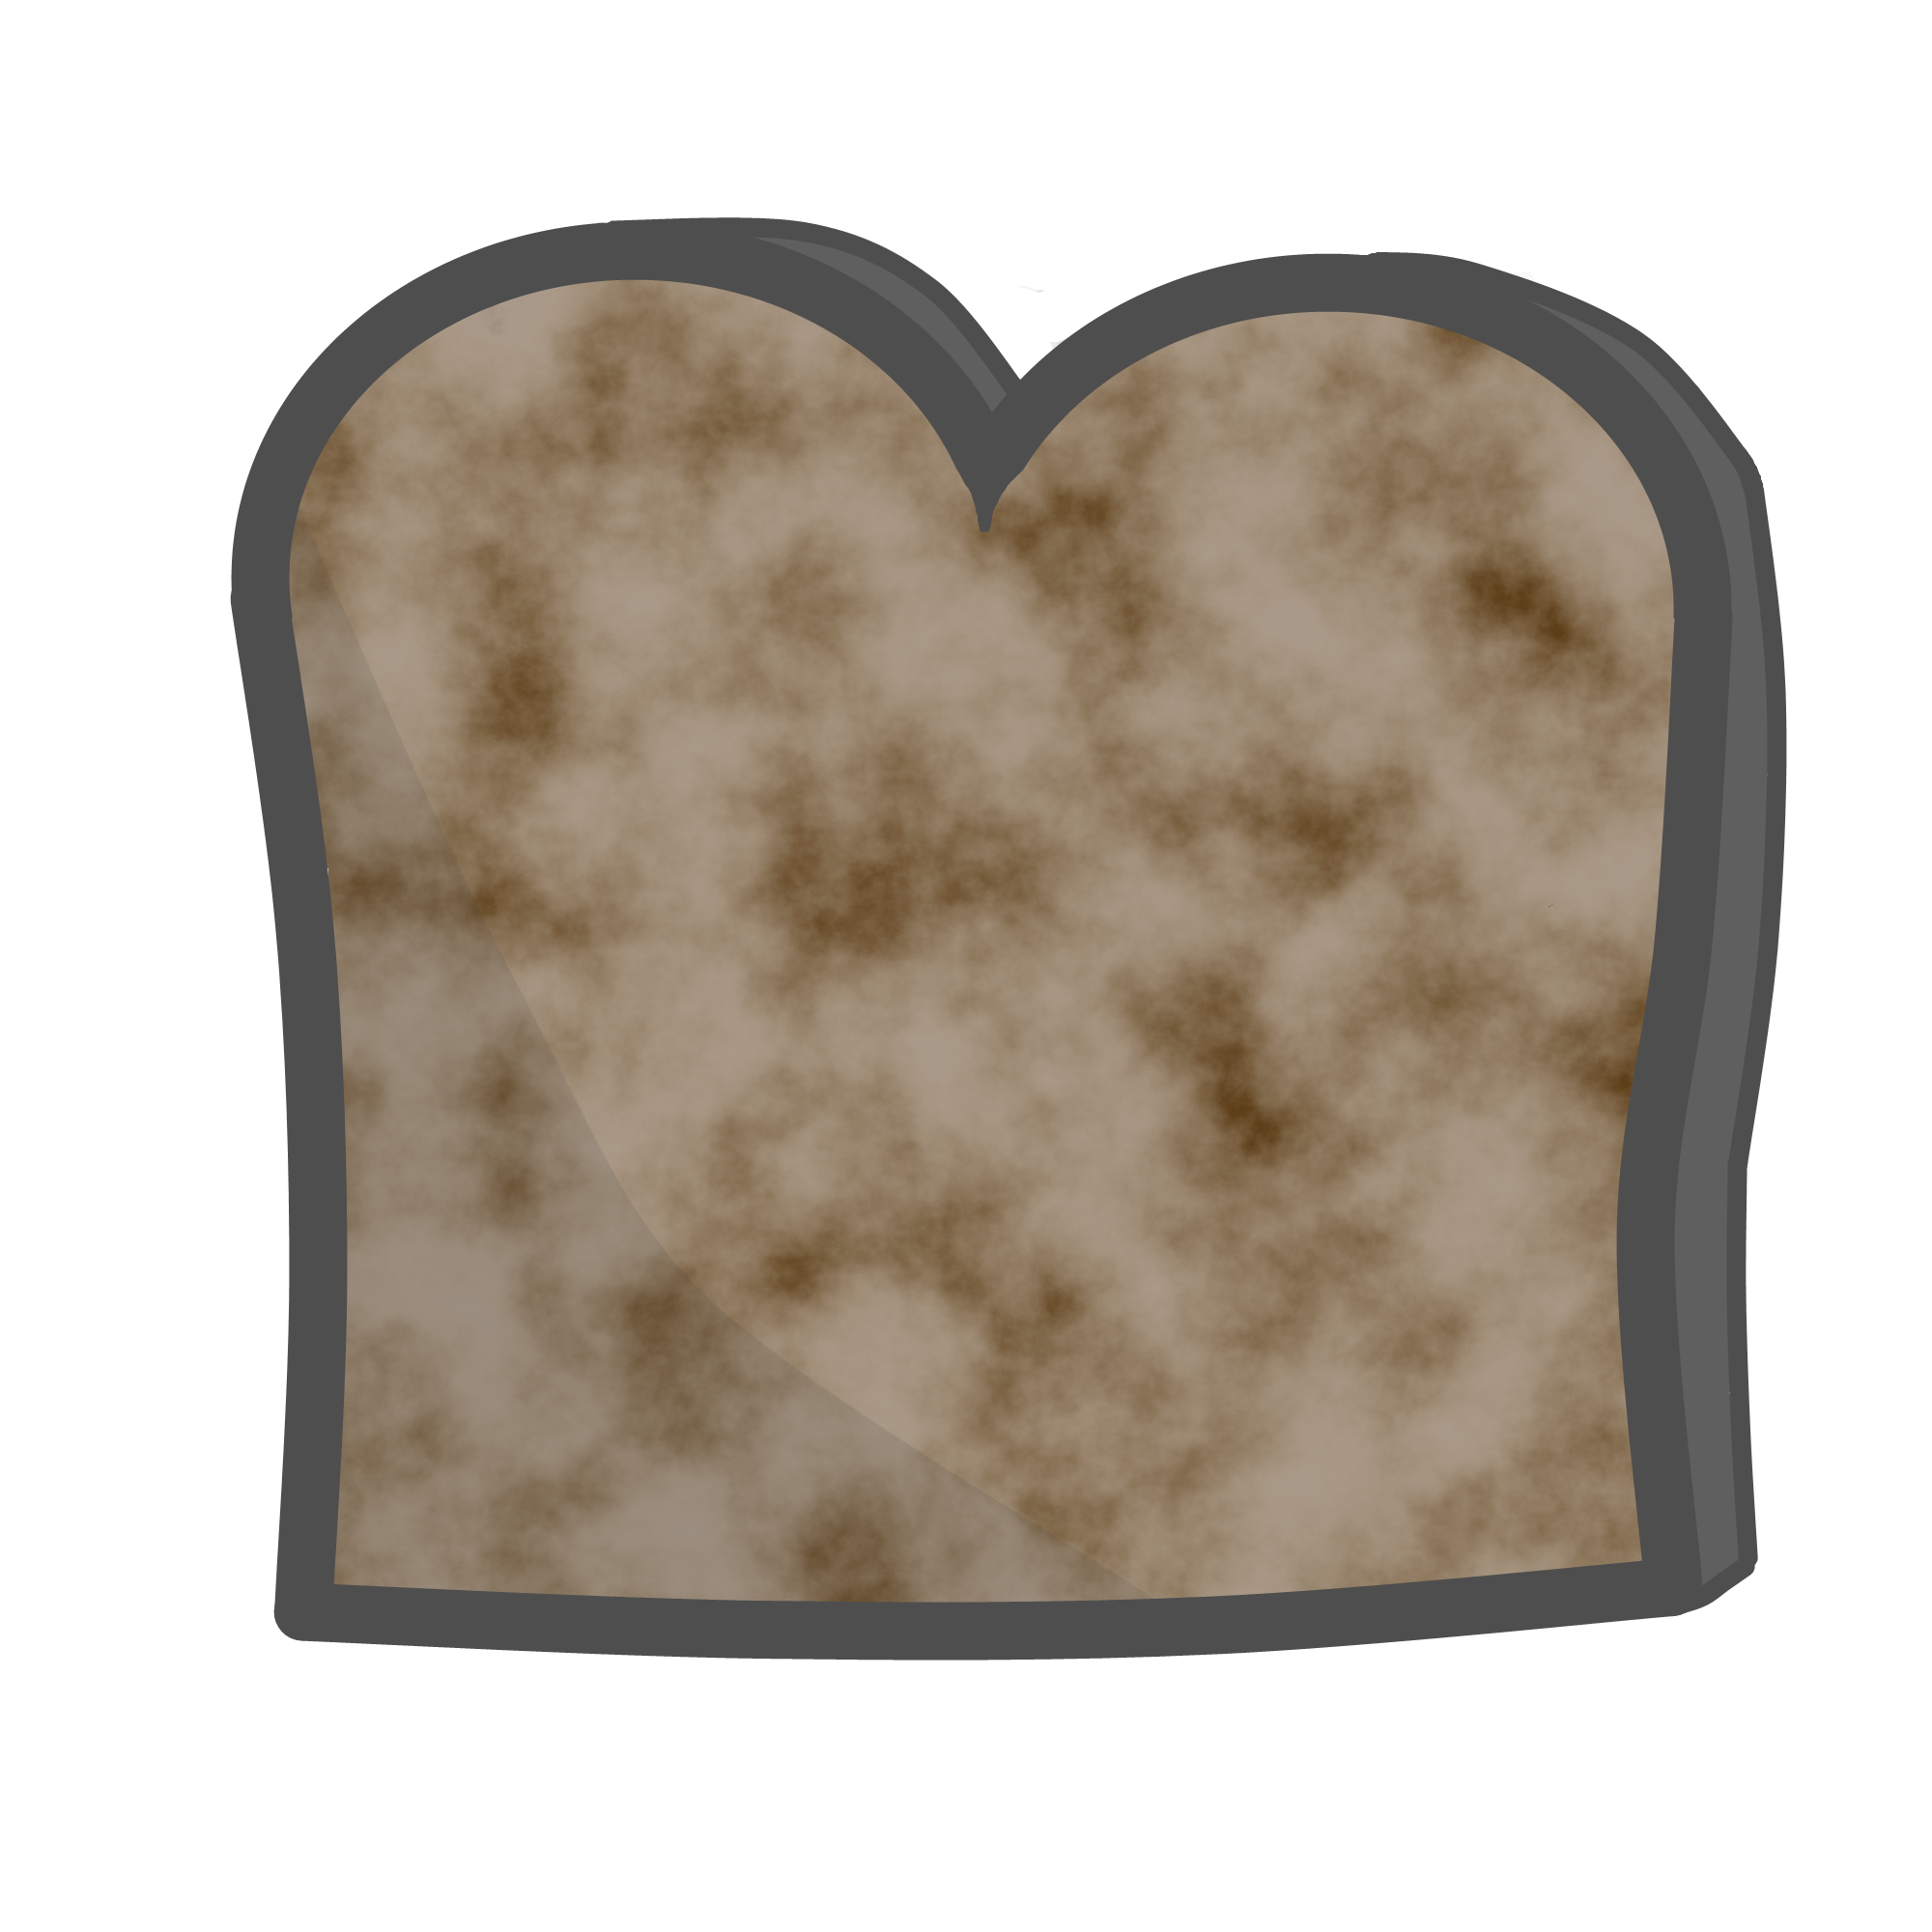 clip freeuse download Toaster clipart toasted bread. Toast object shows community